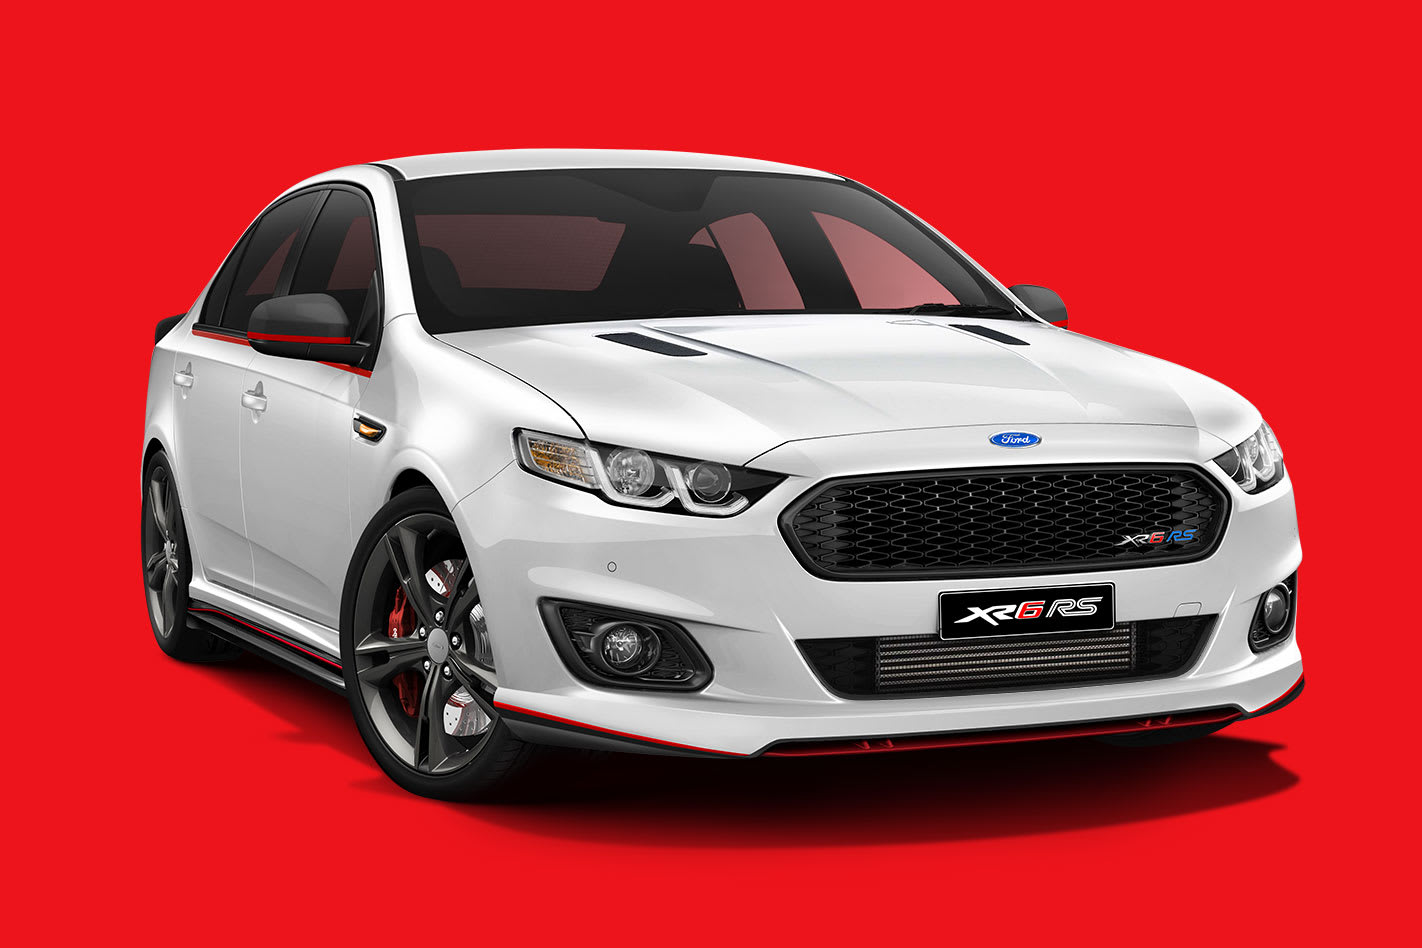 Ford -Falcon -XR6-Sprint -front